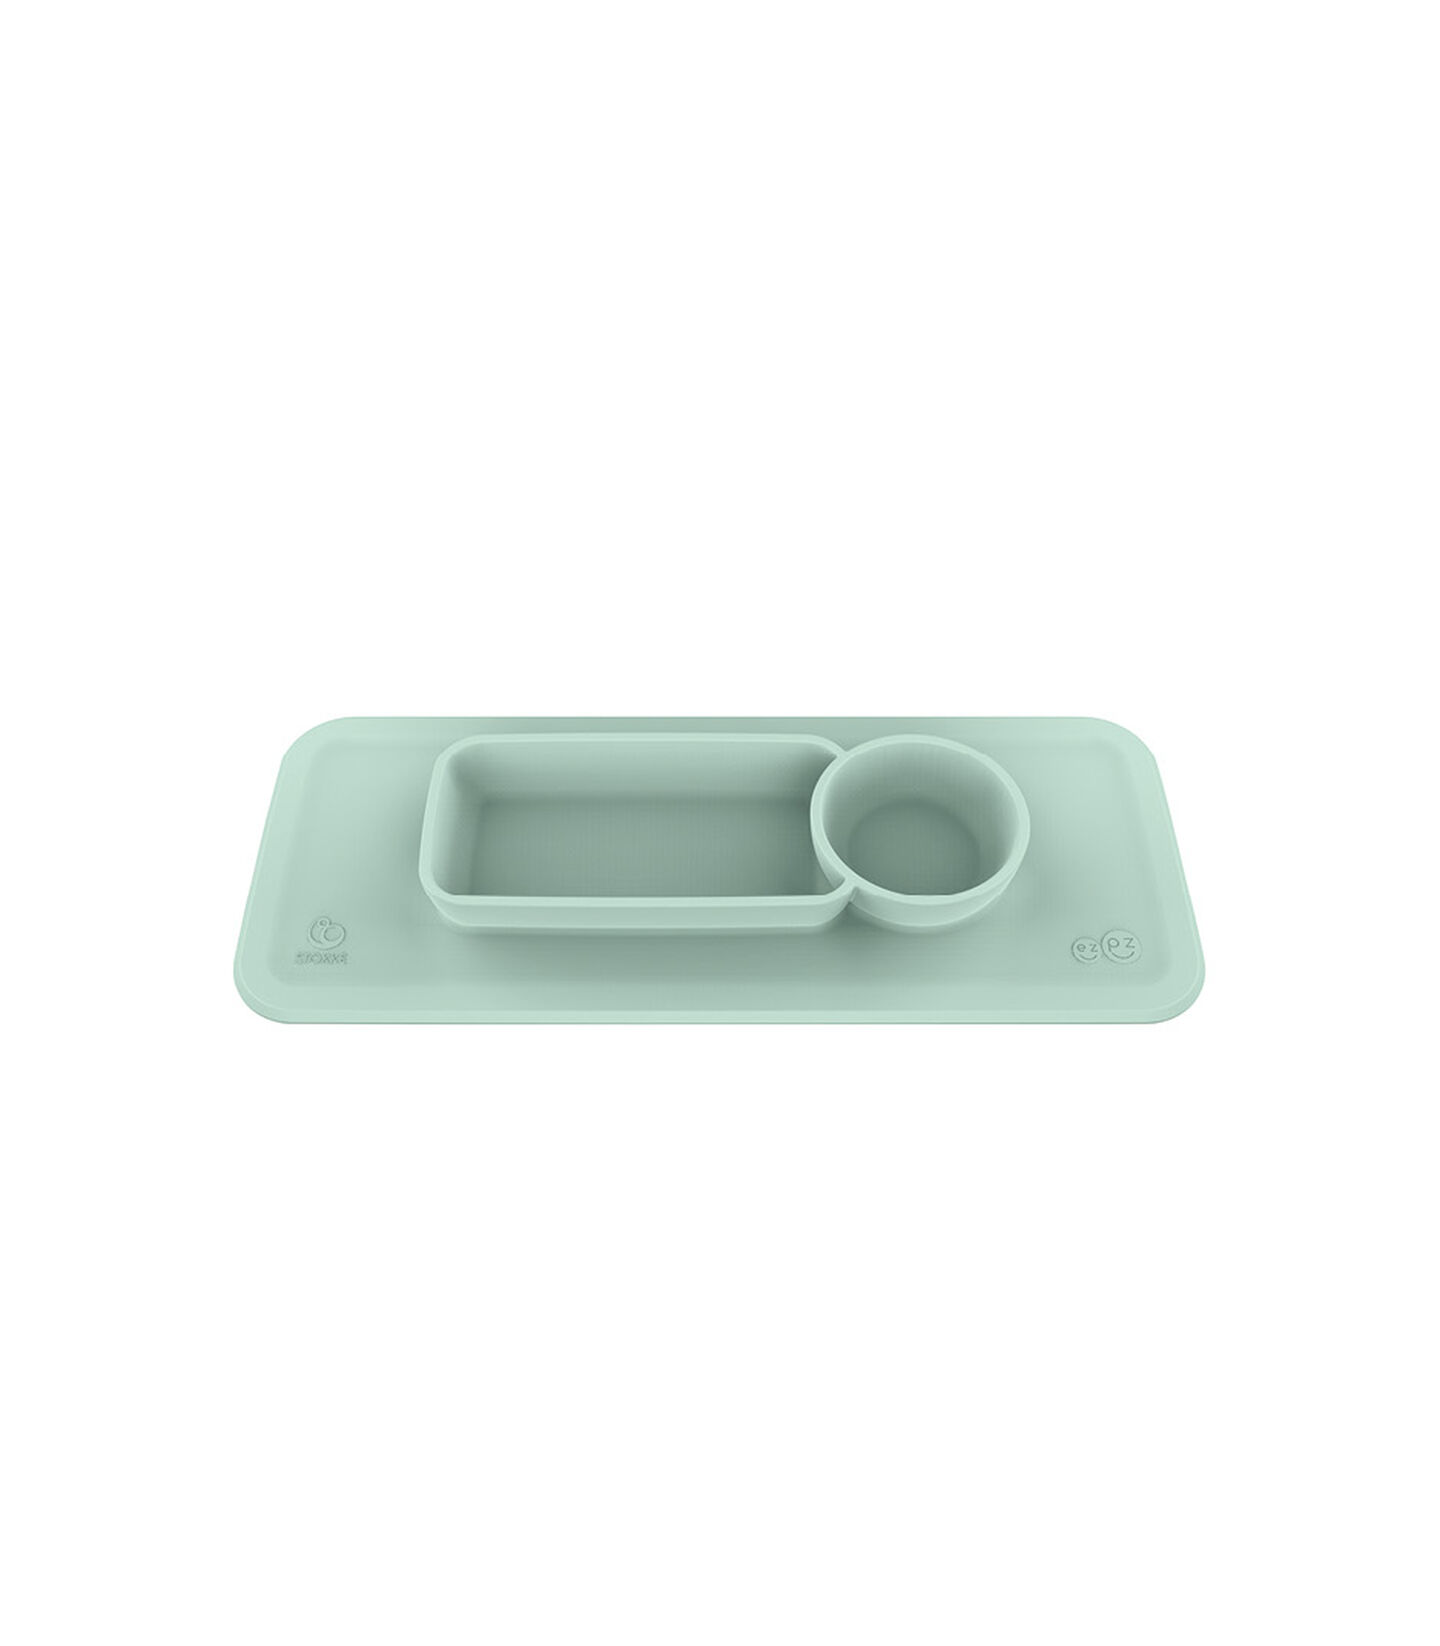 ezpz™ by Stokke™ placemat for Clikk™ Tray Soft Mint, Soft Mint, mainview view 1